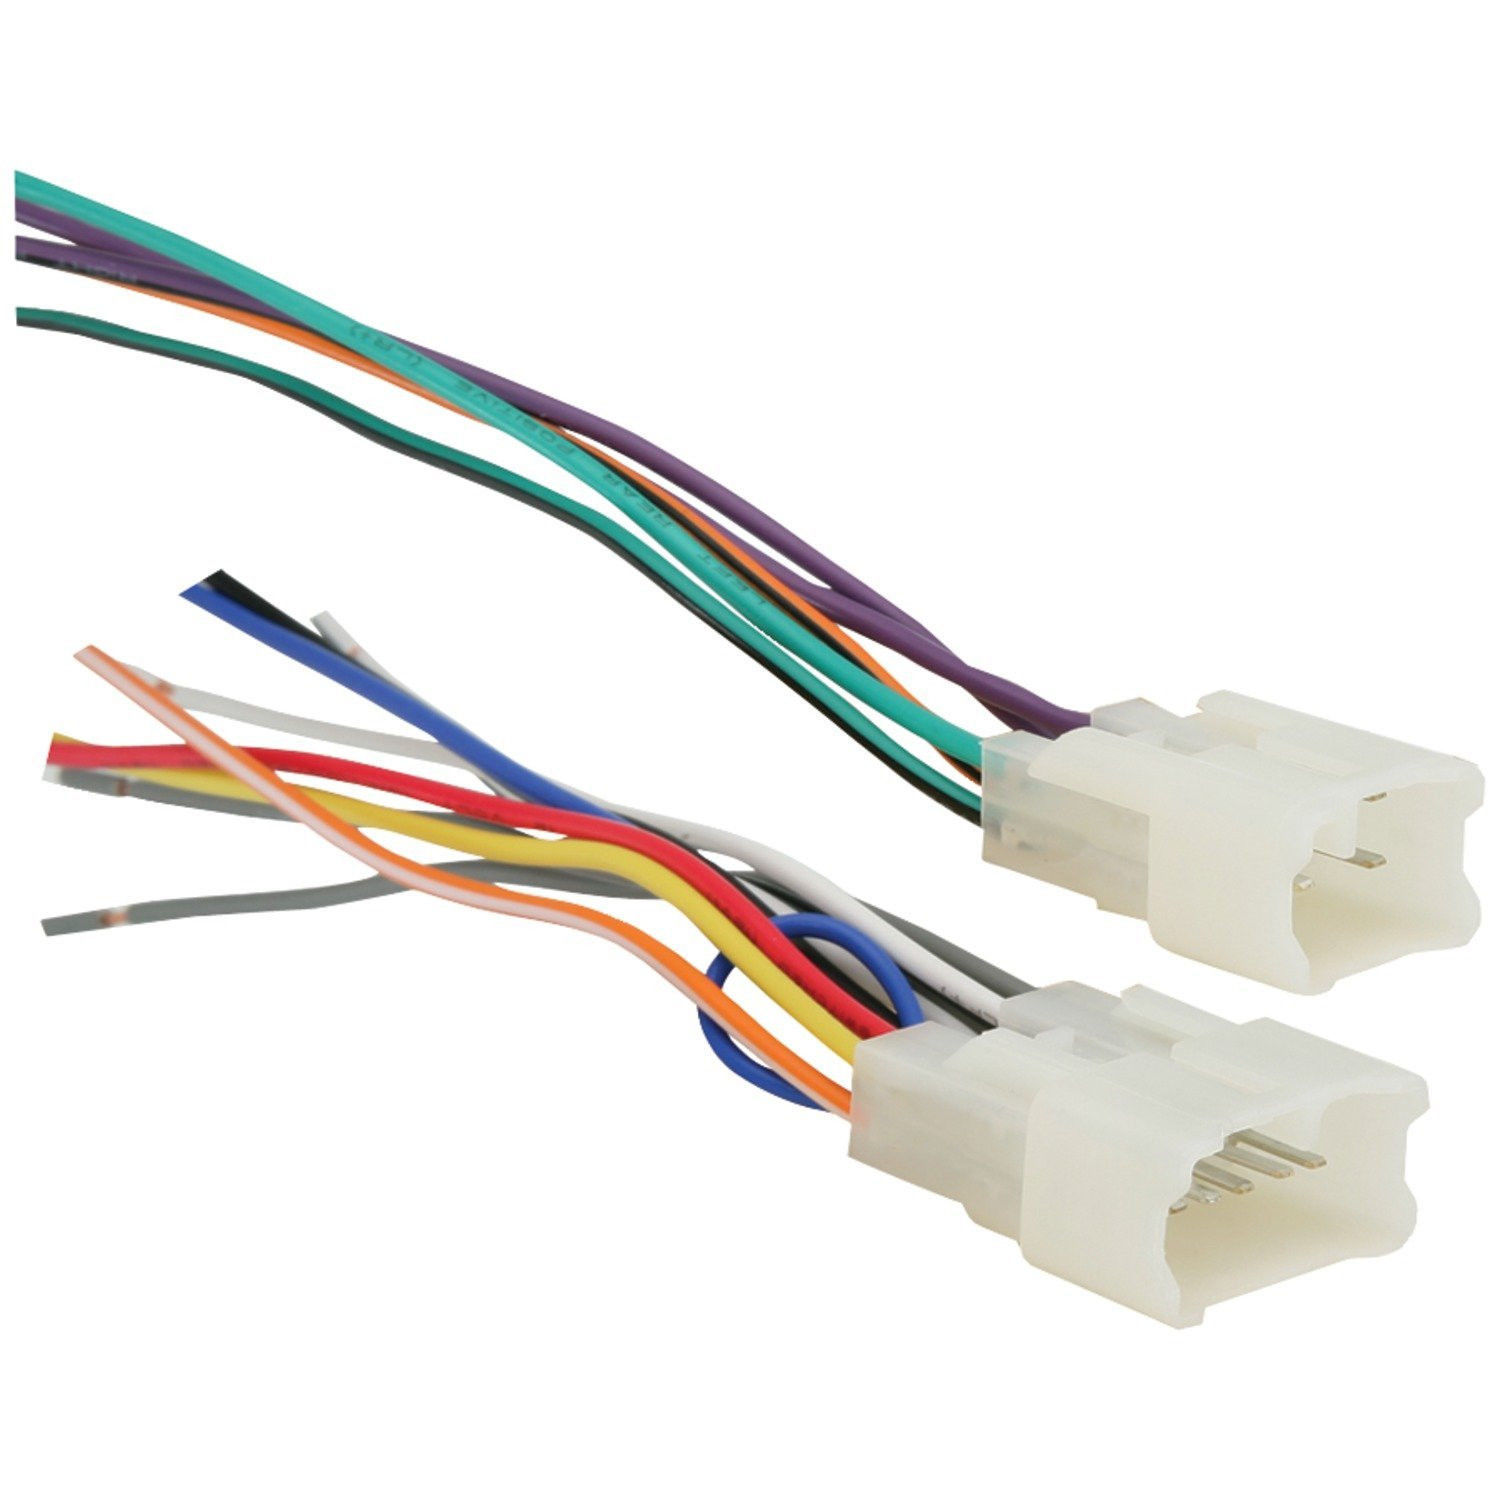 Toyota Car Stereo Cd Player Wiring Harness And 50 Similar Items Aftermarket For Saab S L1600